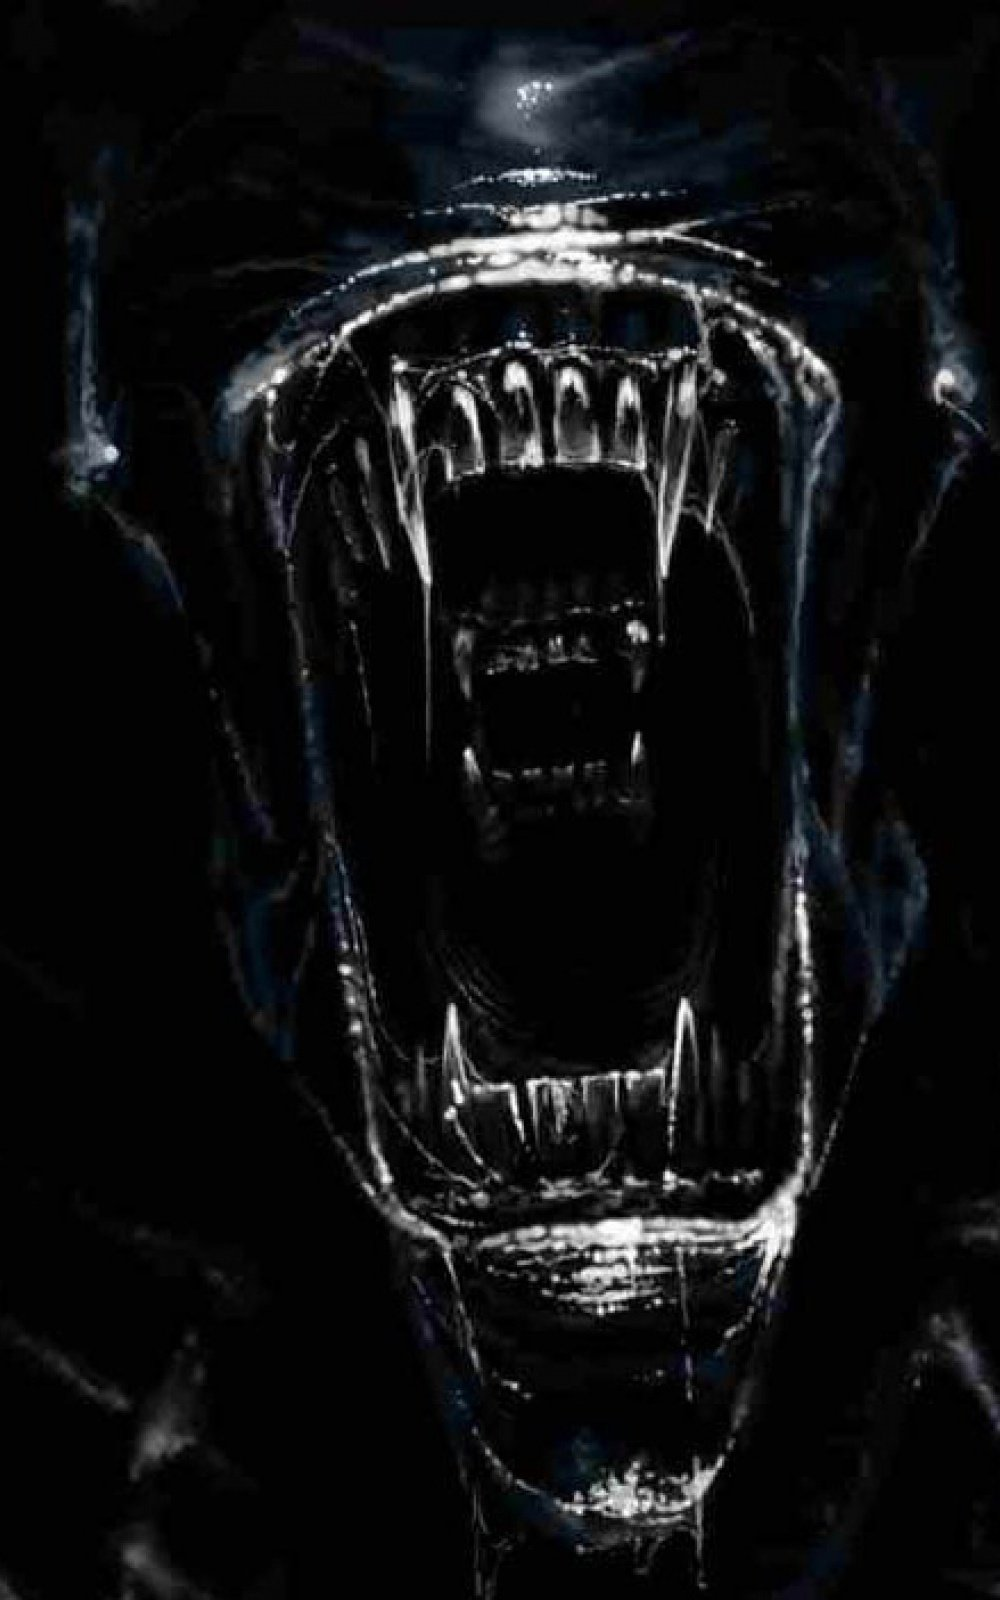 horror movie wallpaper for android - wallpapersafari